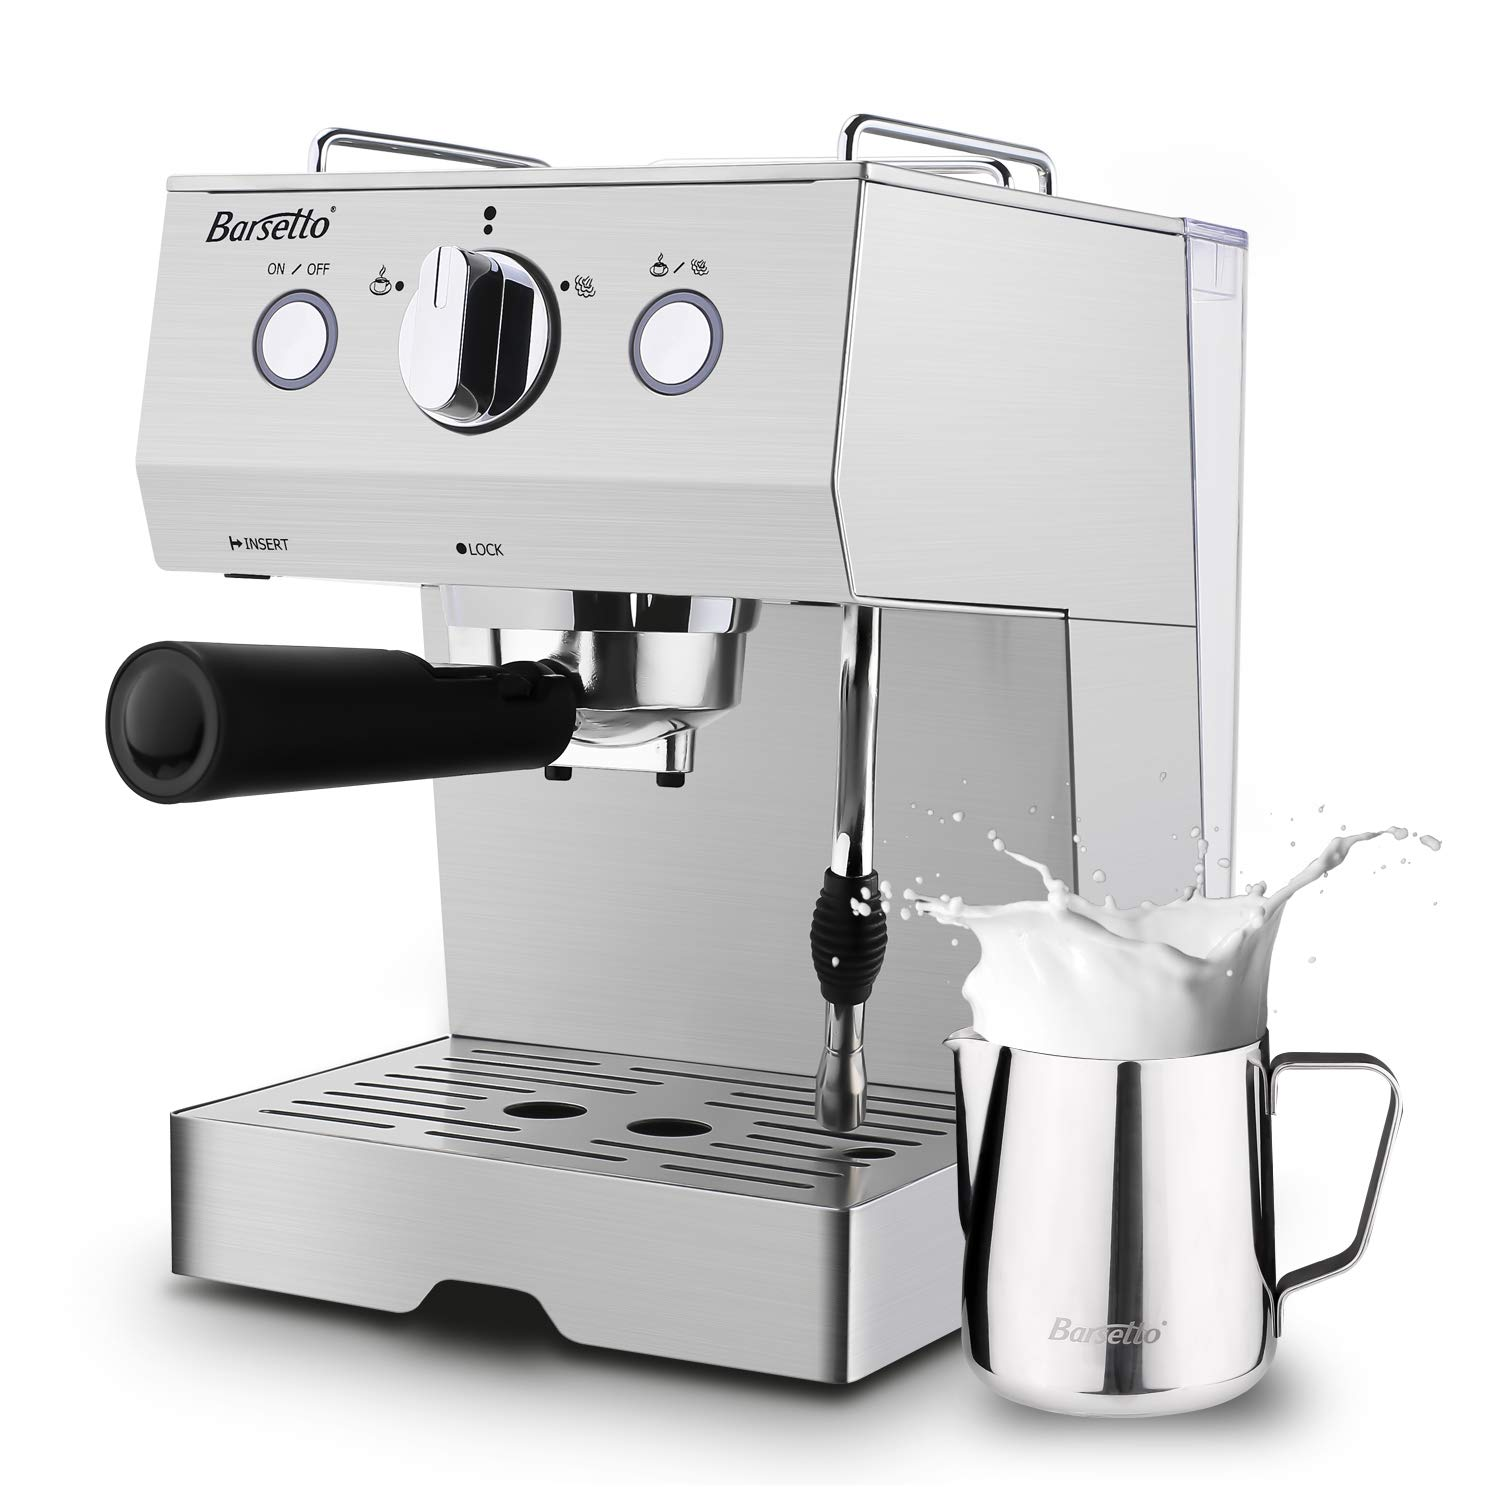 Barsetto Espresso Machine With Milk Frother,Espresso Maker, Coffee Maker with milk steamer,1050W,15 Bar Pump,Stainless Steel by Barsetto